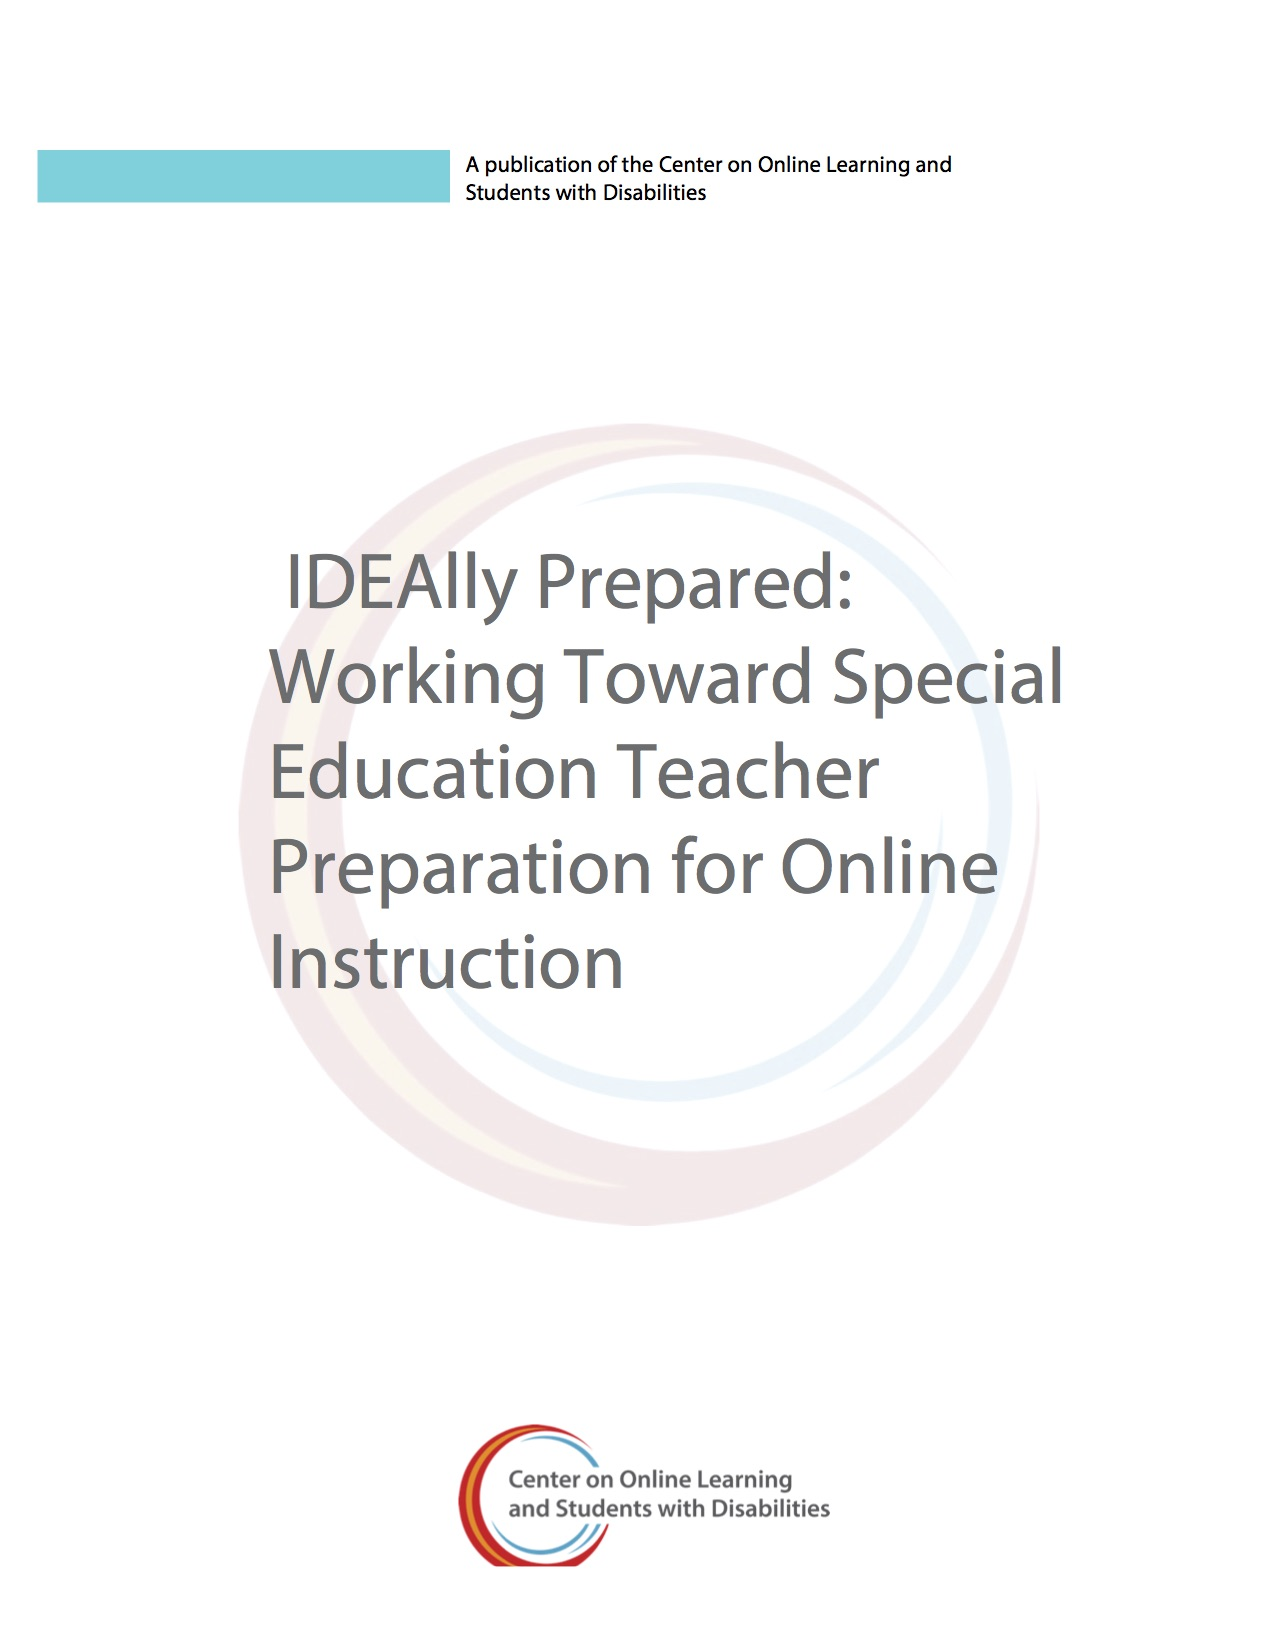 IDEAlly Prepared: Working Toward Special Education Teacher Preparation For Online Instruction